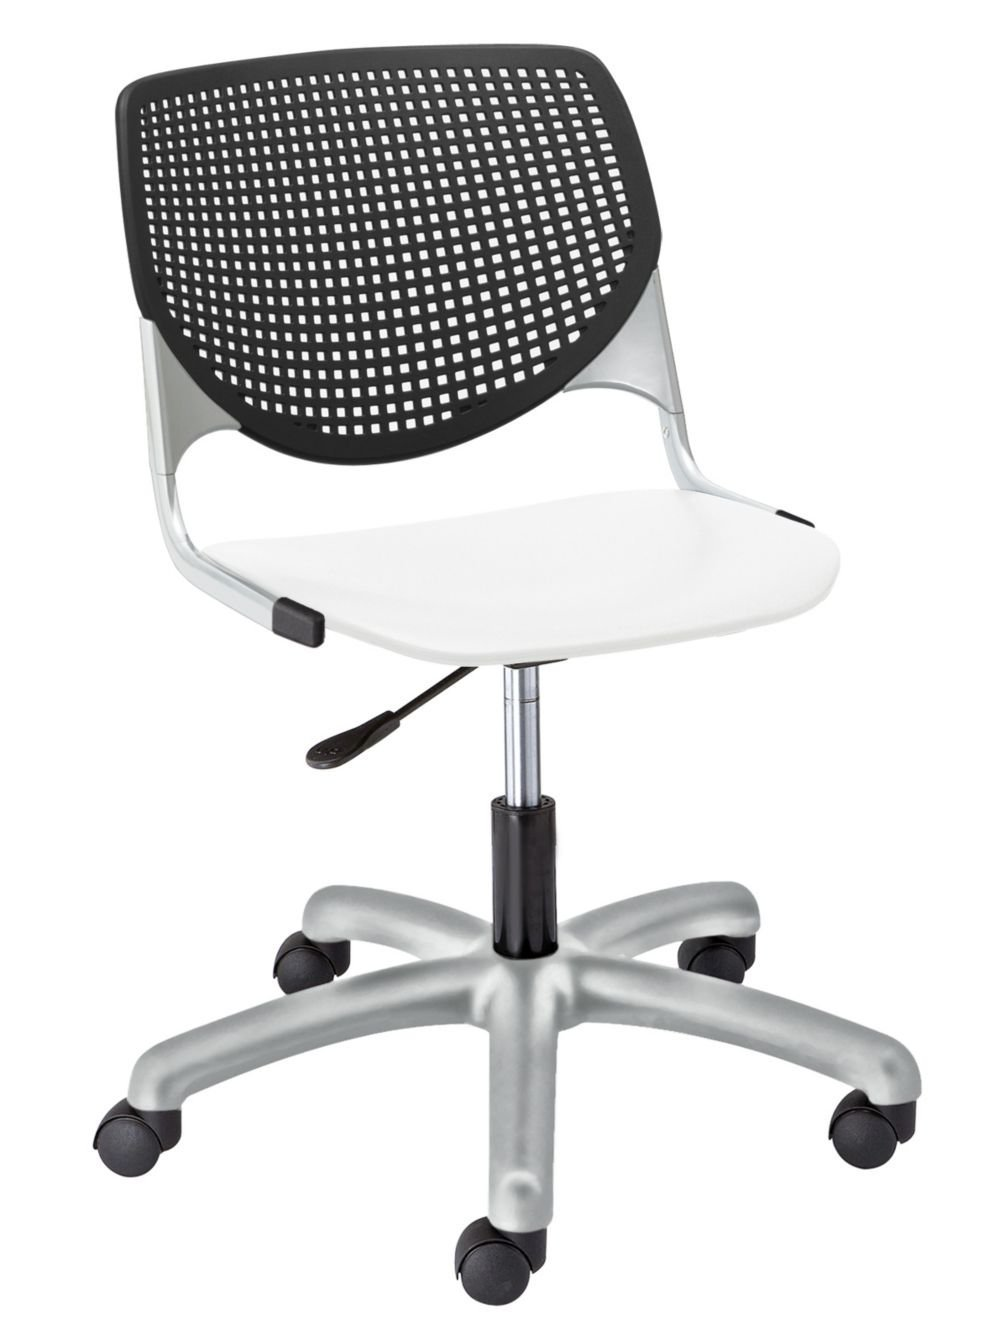 """Kool Polypropylene Perforated Back Task Chair Dimensions: 19.3""""W x 22""""D x 35""""H Seat Dimensions: 18""""Wx18""""Dx18""""H Black Polypropylene Back/White Polypropylene Seat/Silver Frame"""